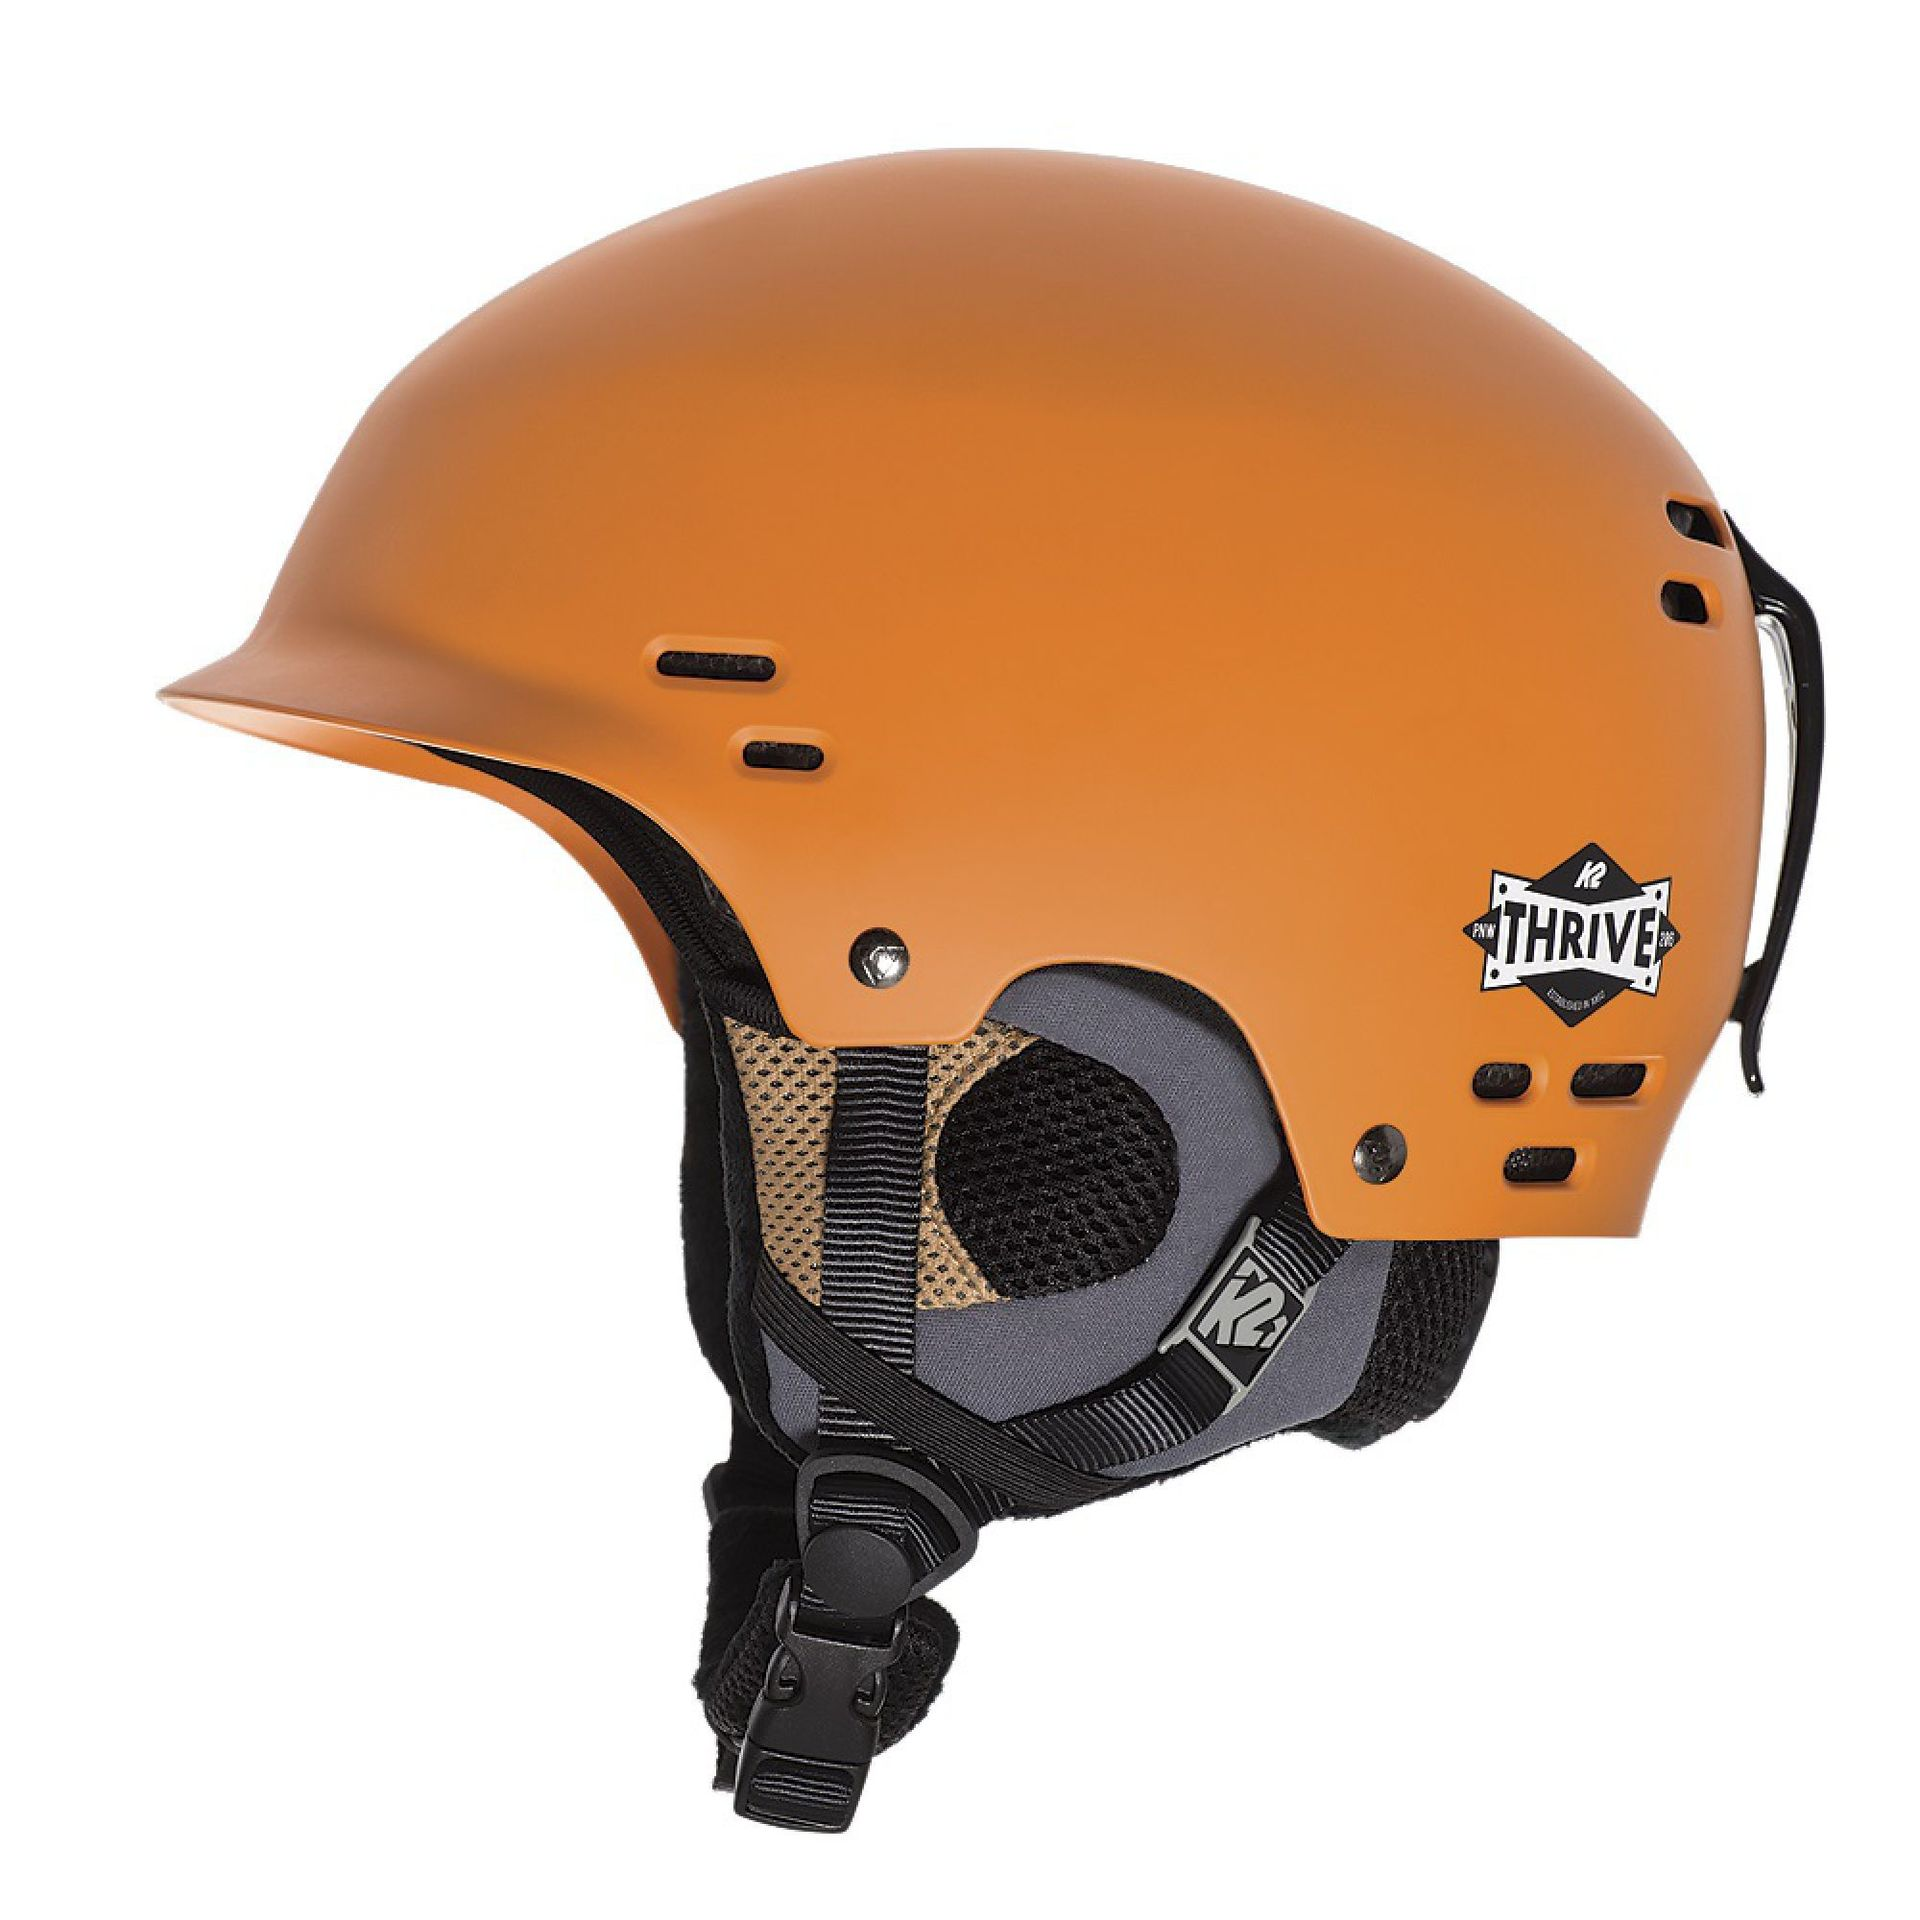 KASK K2 THRIVE RUST ORANGE